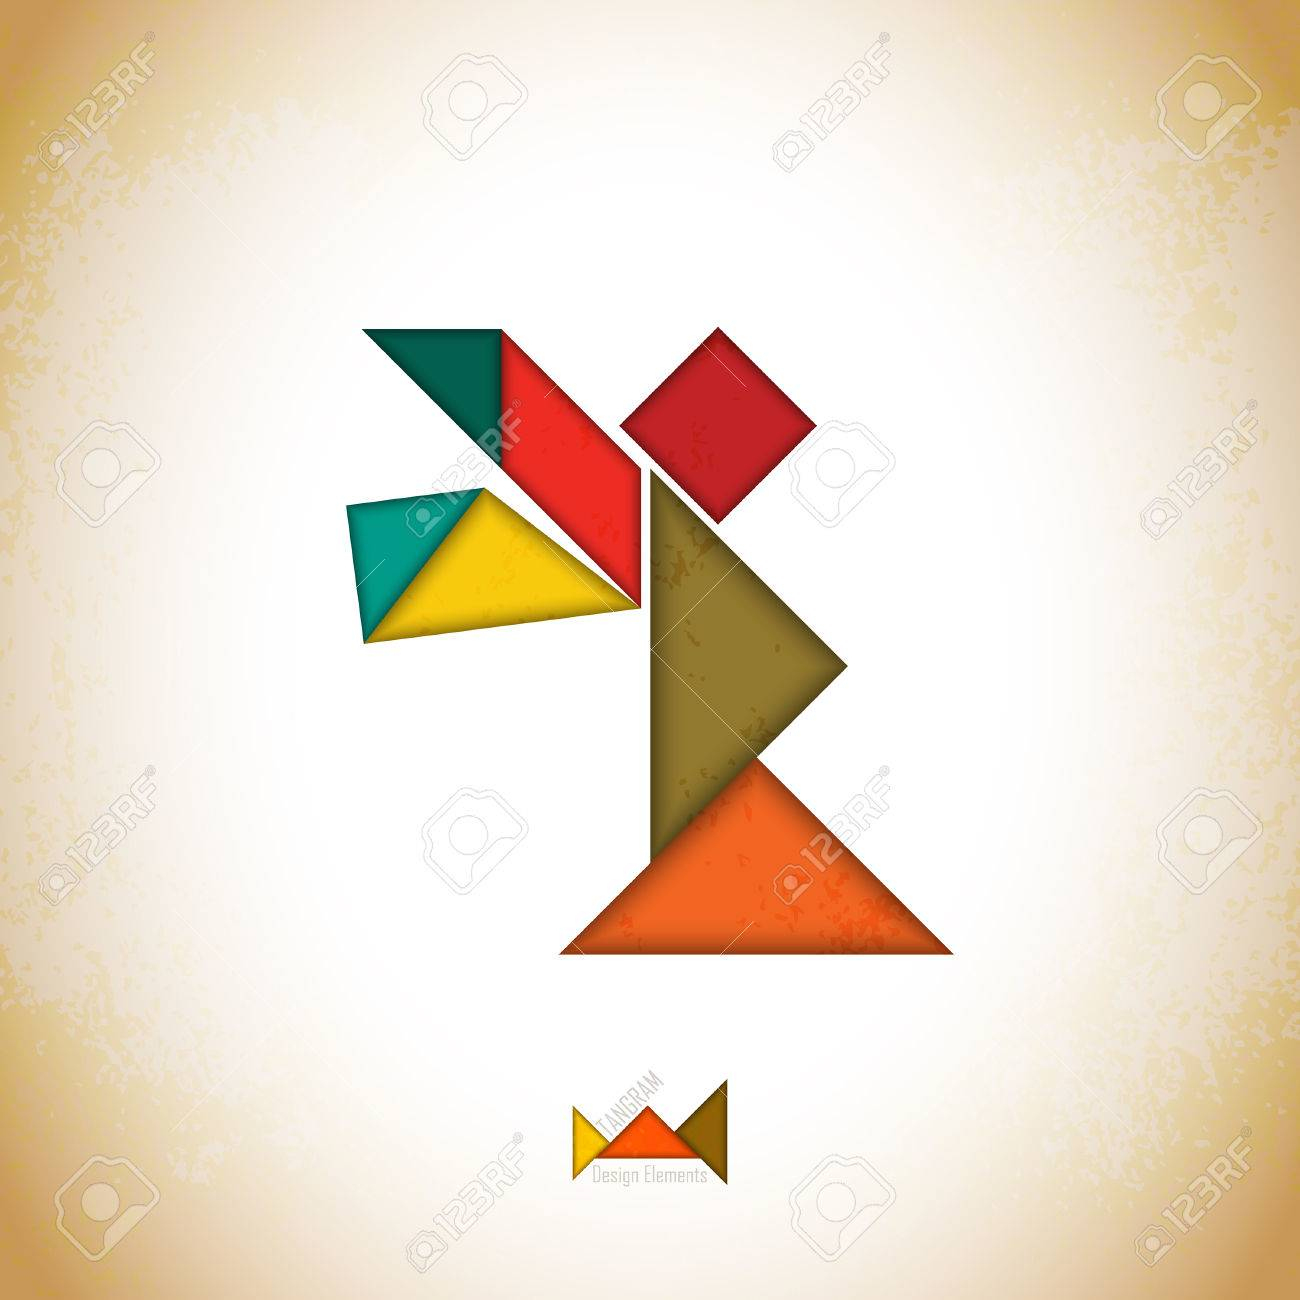 Tangram Angel. Angel Made Of Tangram Pieces, Geometric Shapes. Traditional  Chinese Puzzle Tangram Solution Card, Learning Game For Kids, Children. à Pièces Tangram